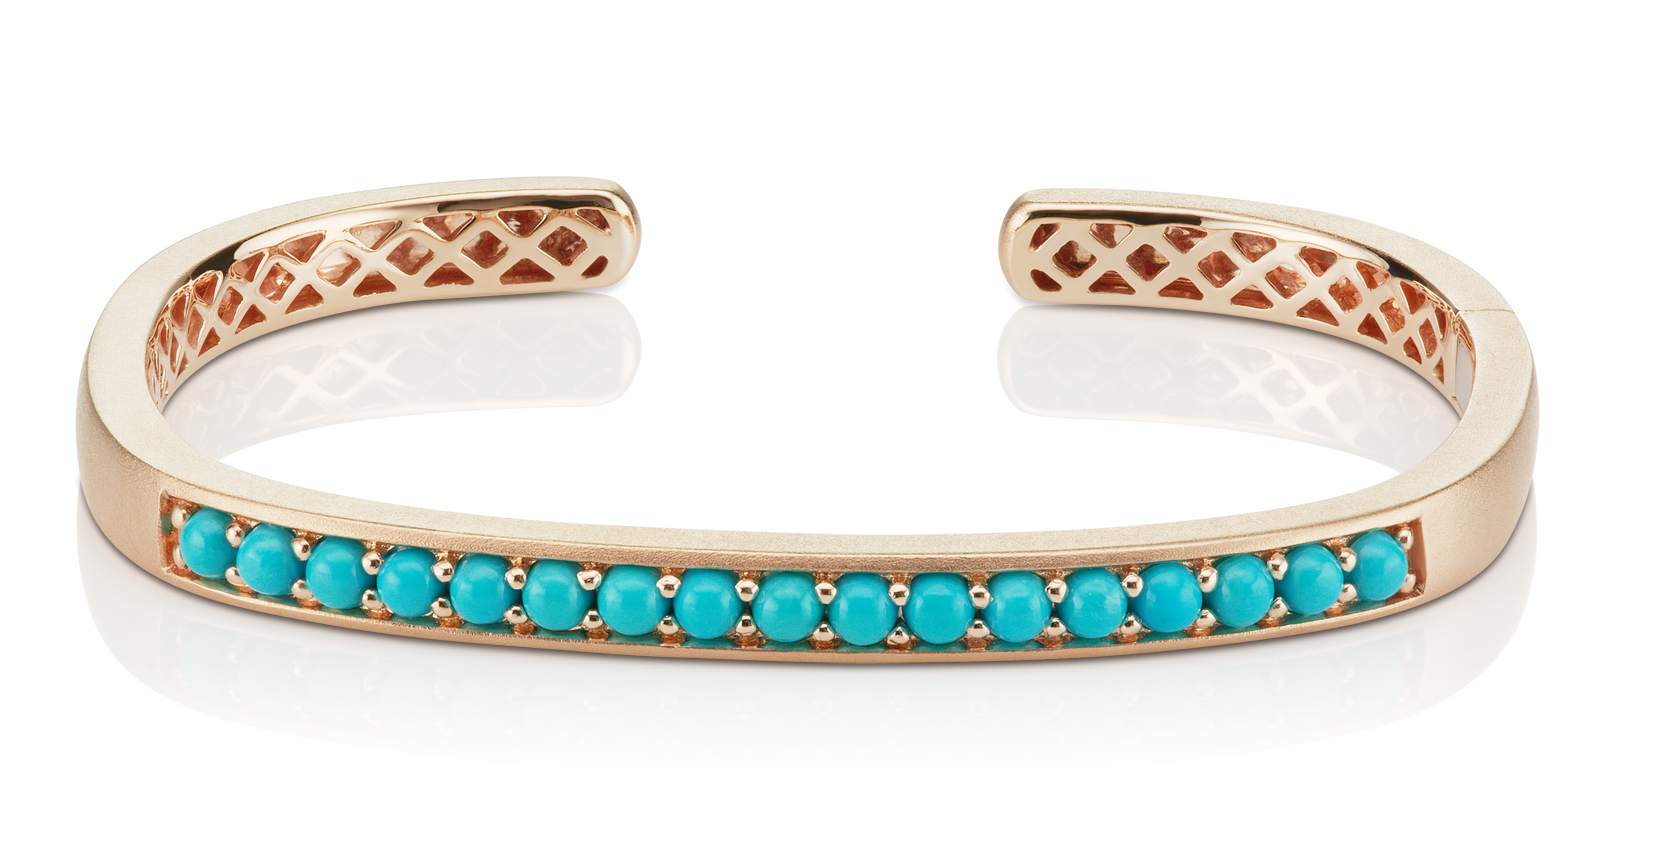 Jane Taylor turquoise bracelet | JCK On Your Market